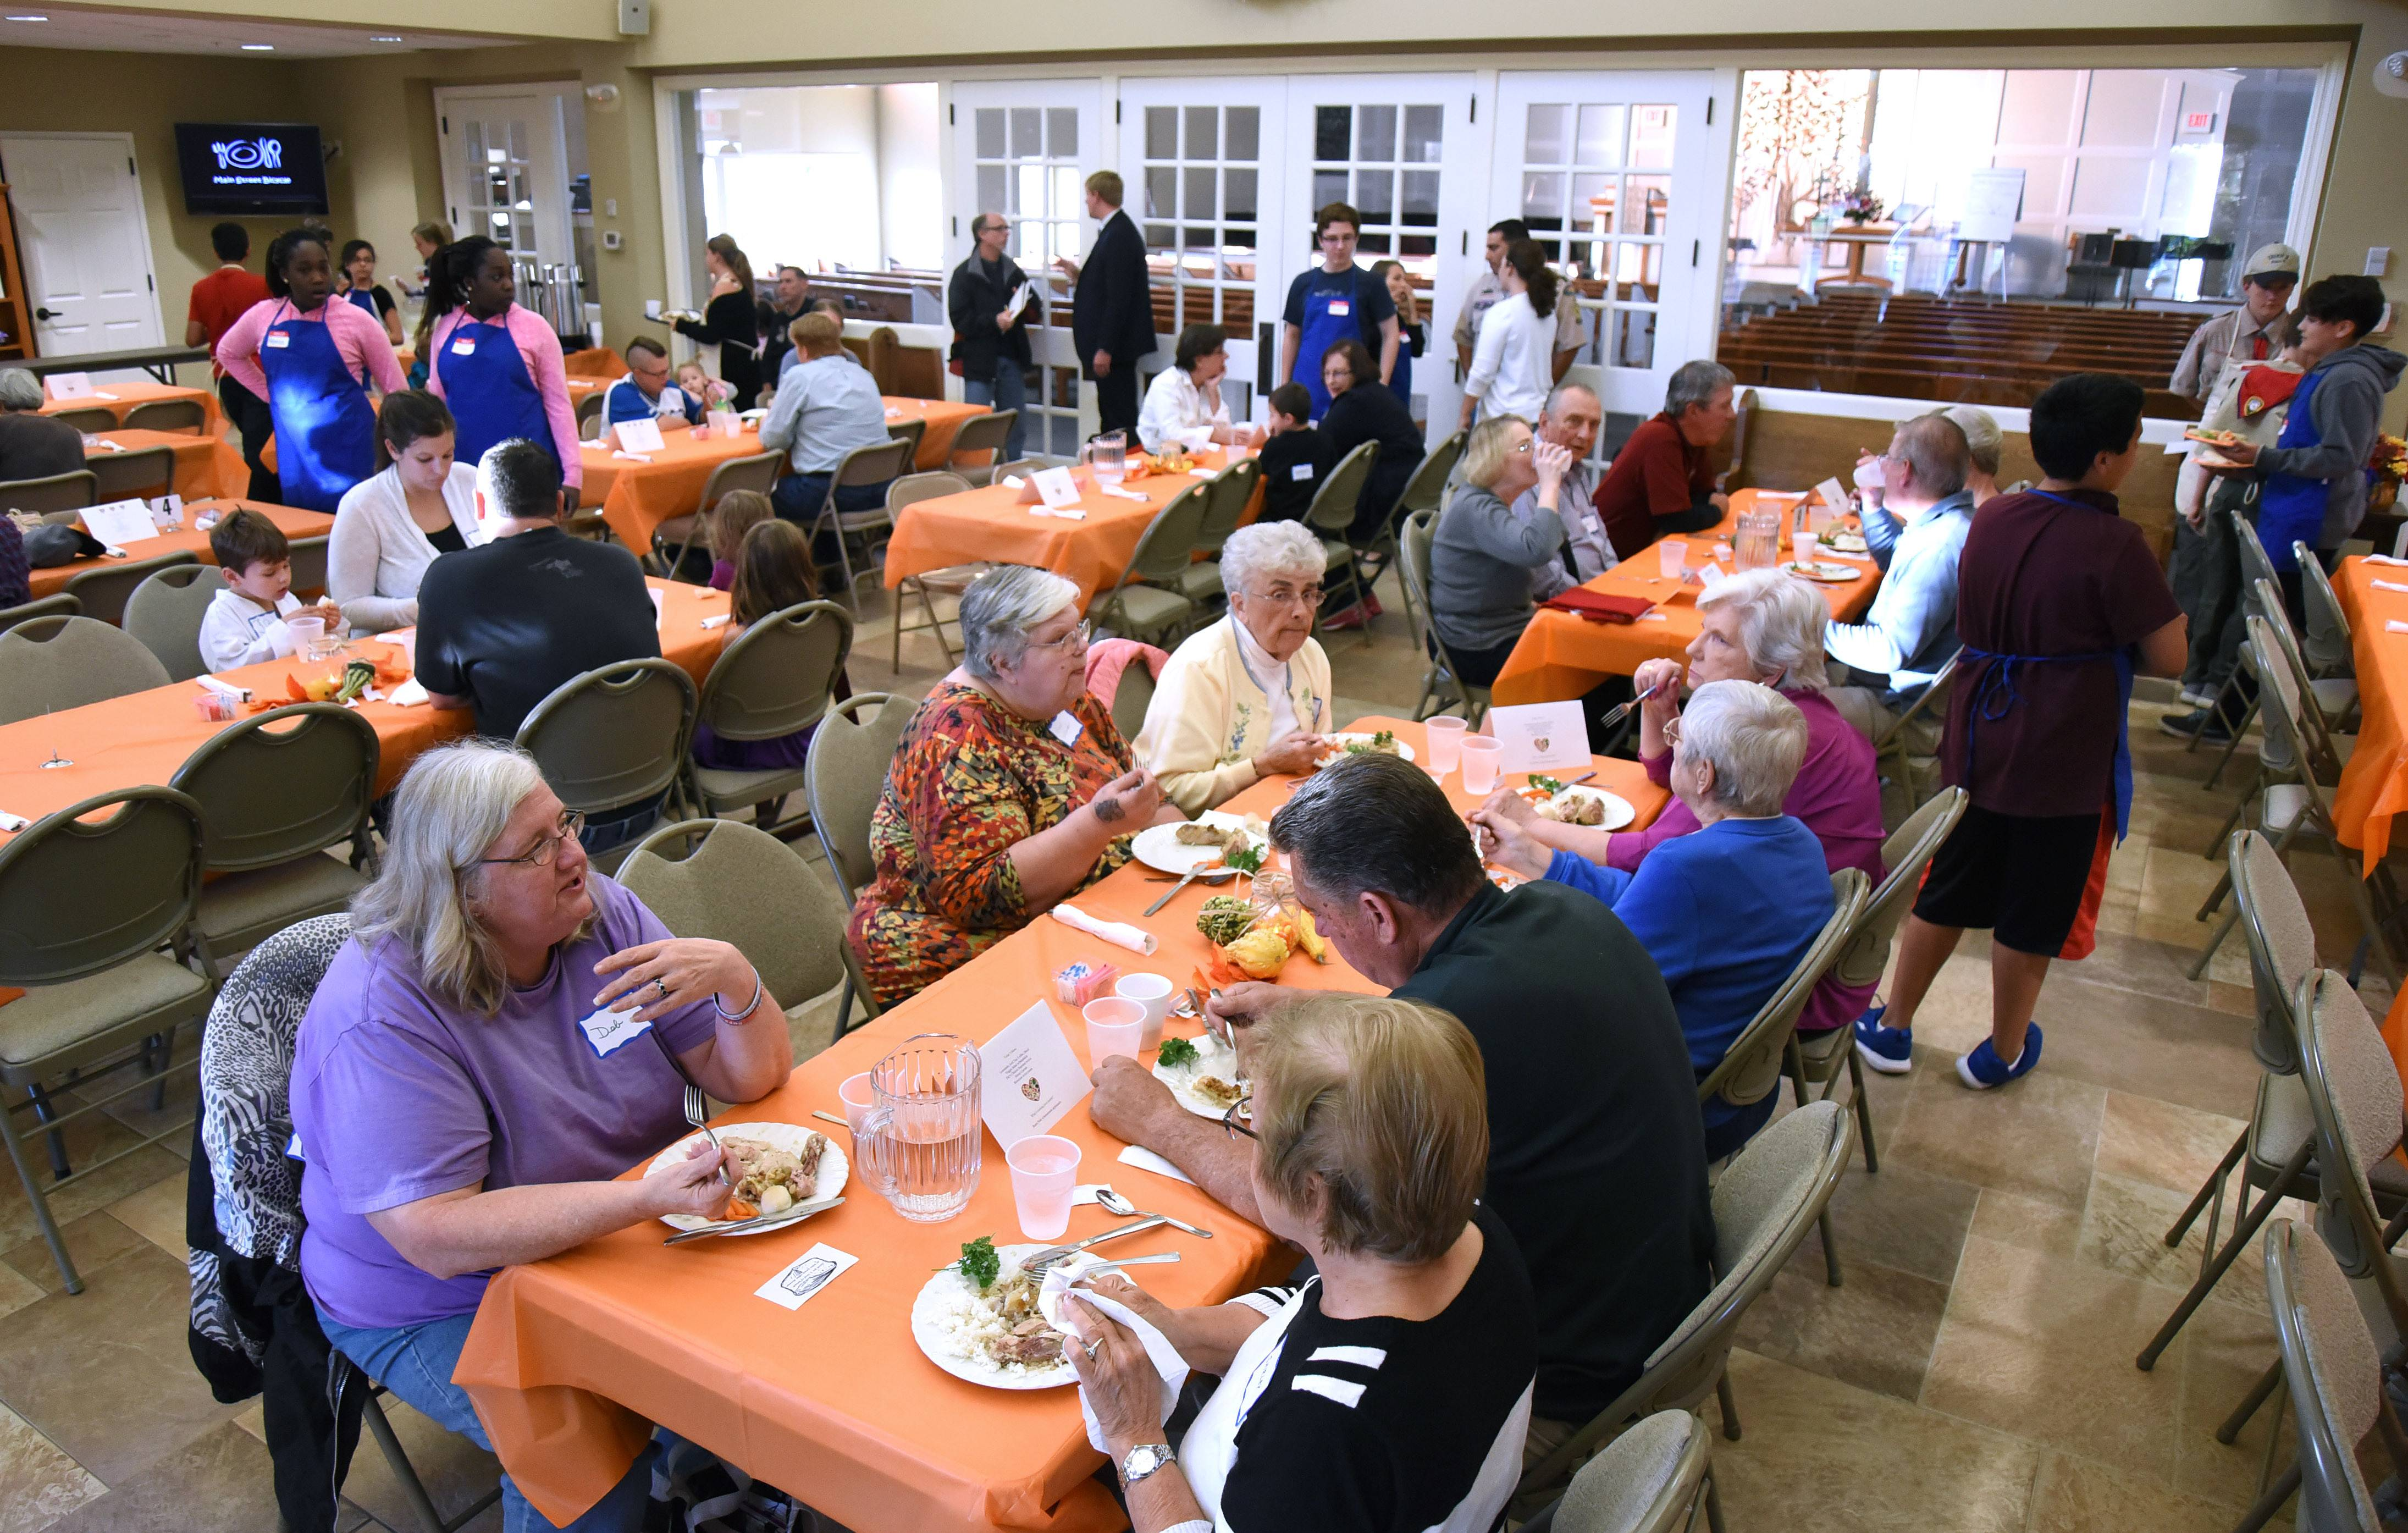 Inspired by free community meals served by churches in Geneva, Batavia and St. Charles, First Congregational Church of Dundee hosted its first Hilltop Community Supper on Tuesday in West Dundee.